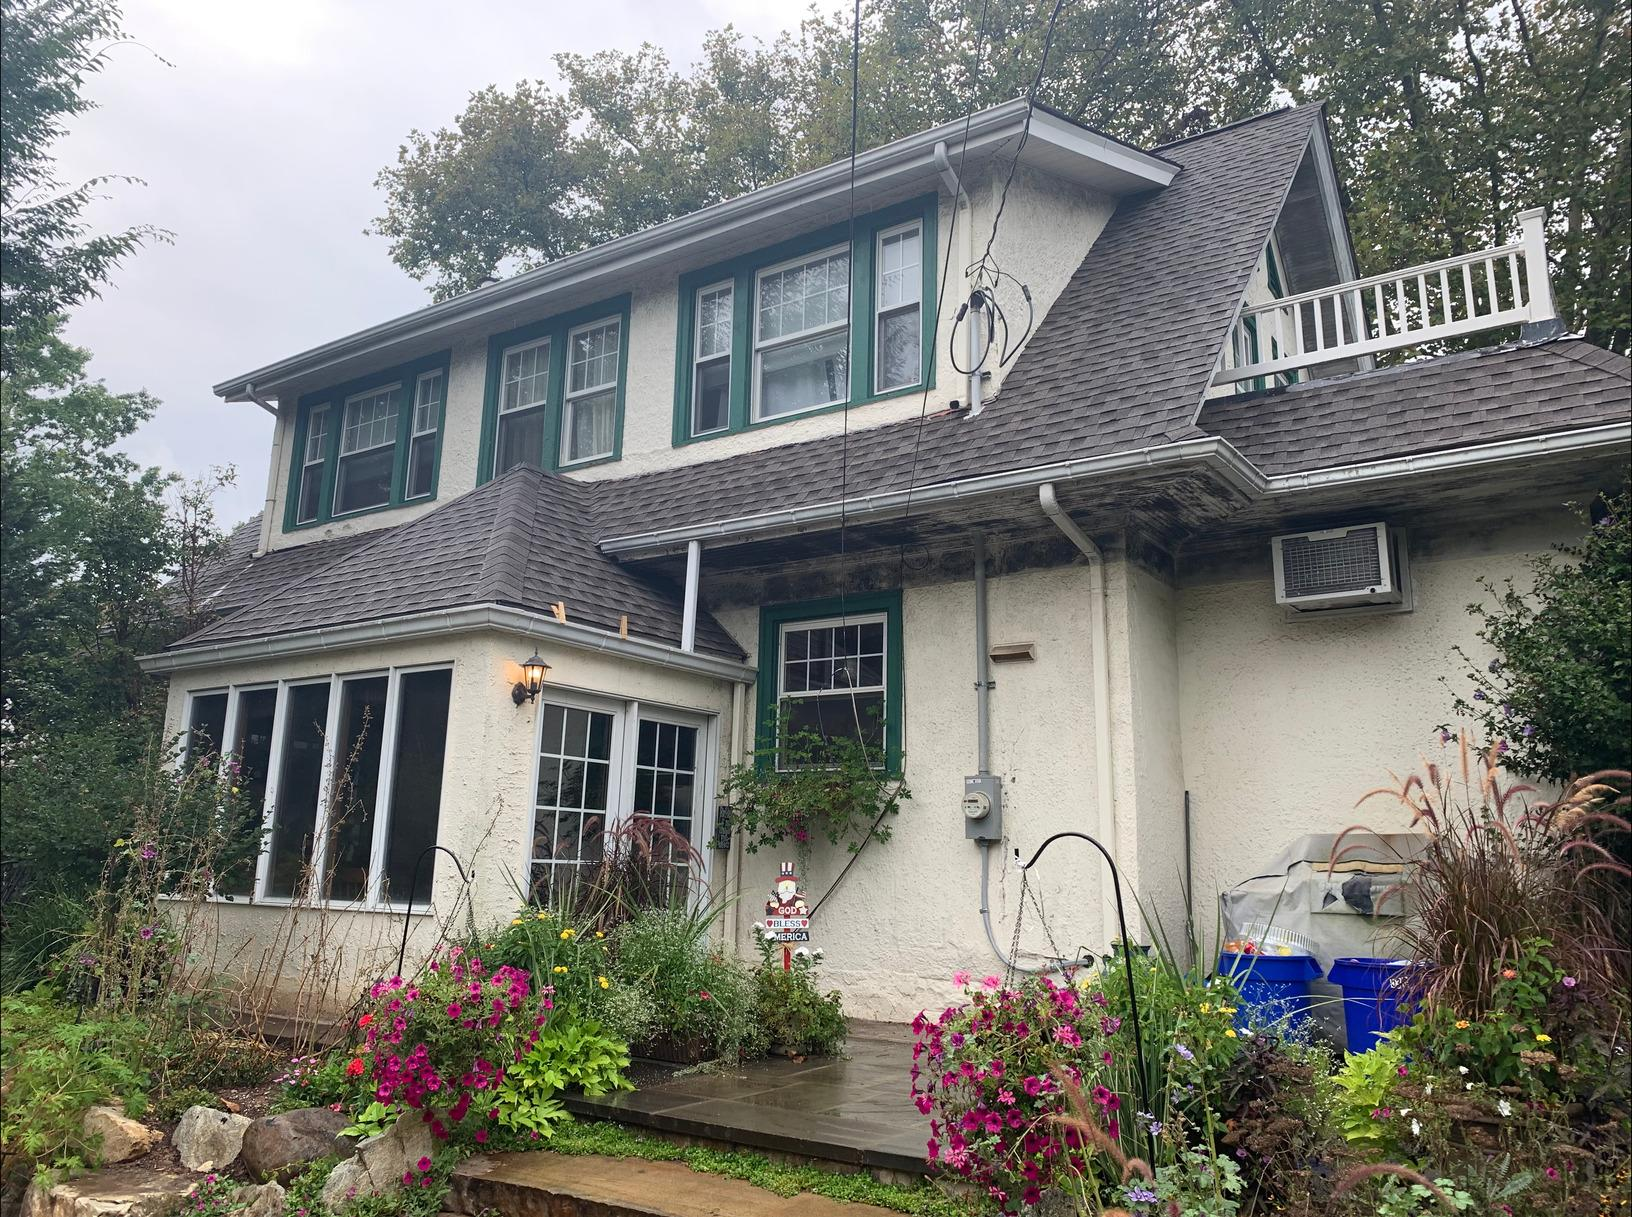 Classic Phoenixville House Painted in Bold Colors - Before Photo